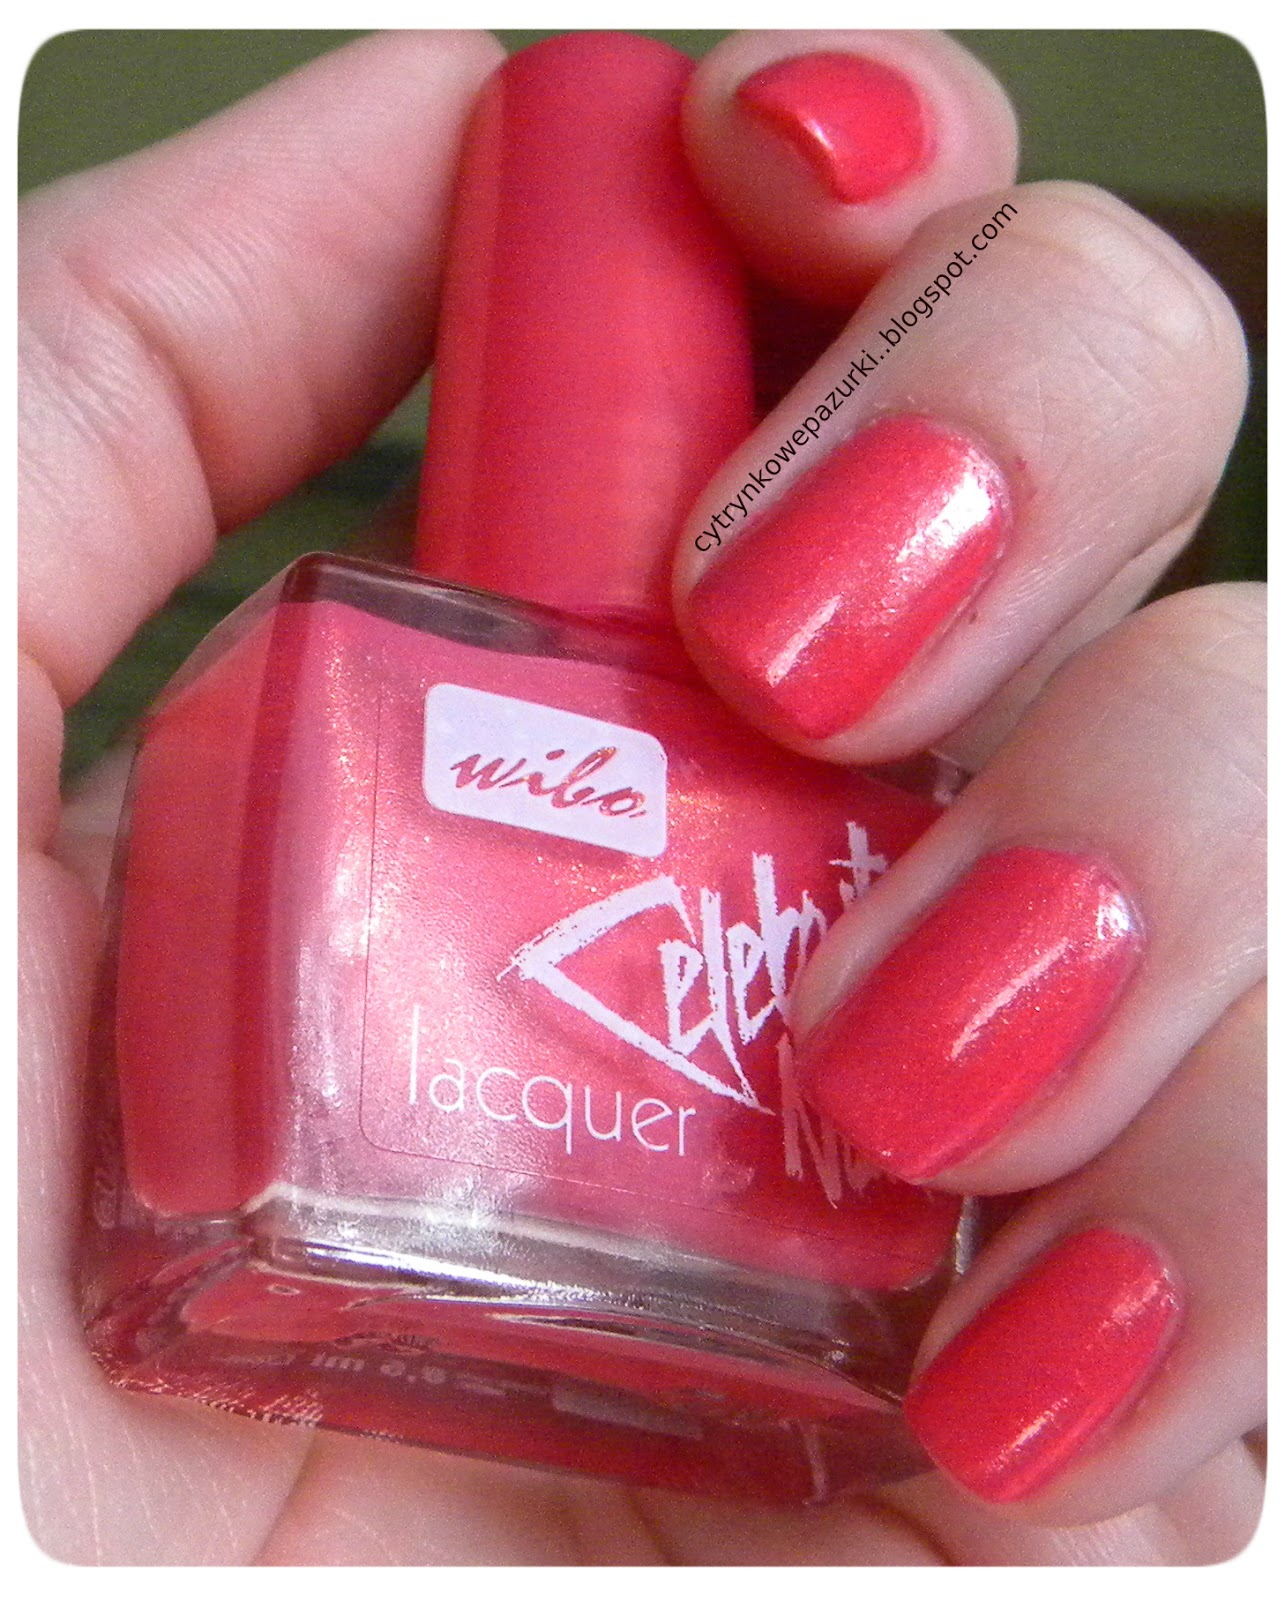 Wibo Celebrity nr 3 Nails Sweet Candy